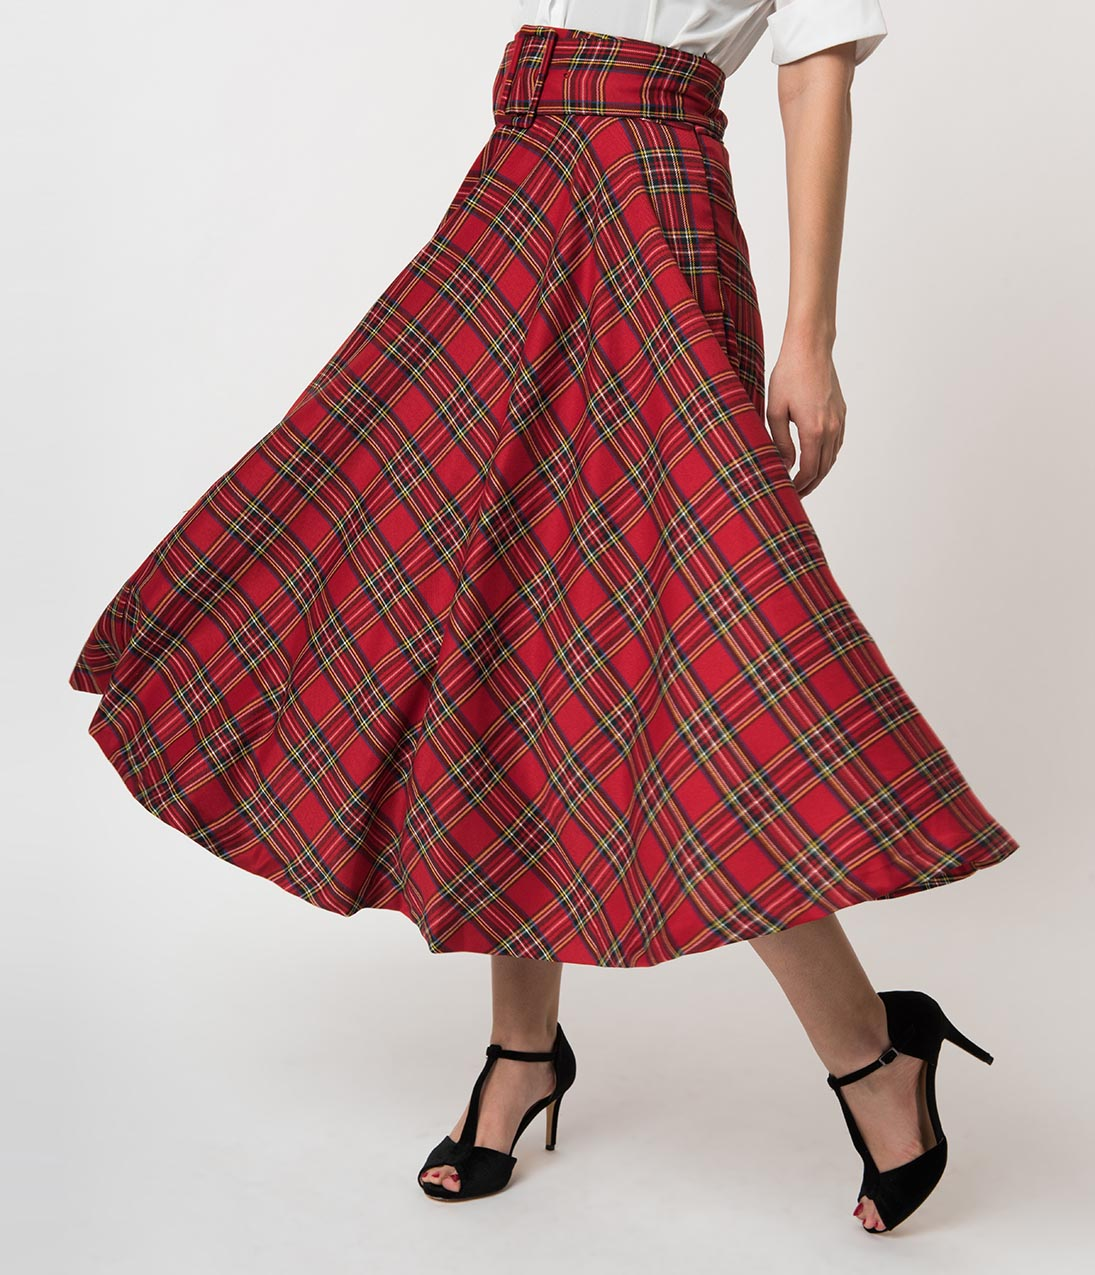 1be5e1c7af8 1940s Style Skirts- Vintage High Waisted Skirts Vintage Style Red Cotton  Plaid Belted High Waist